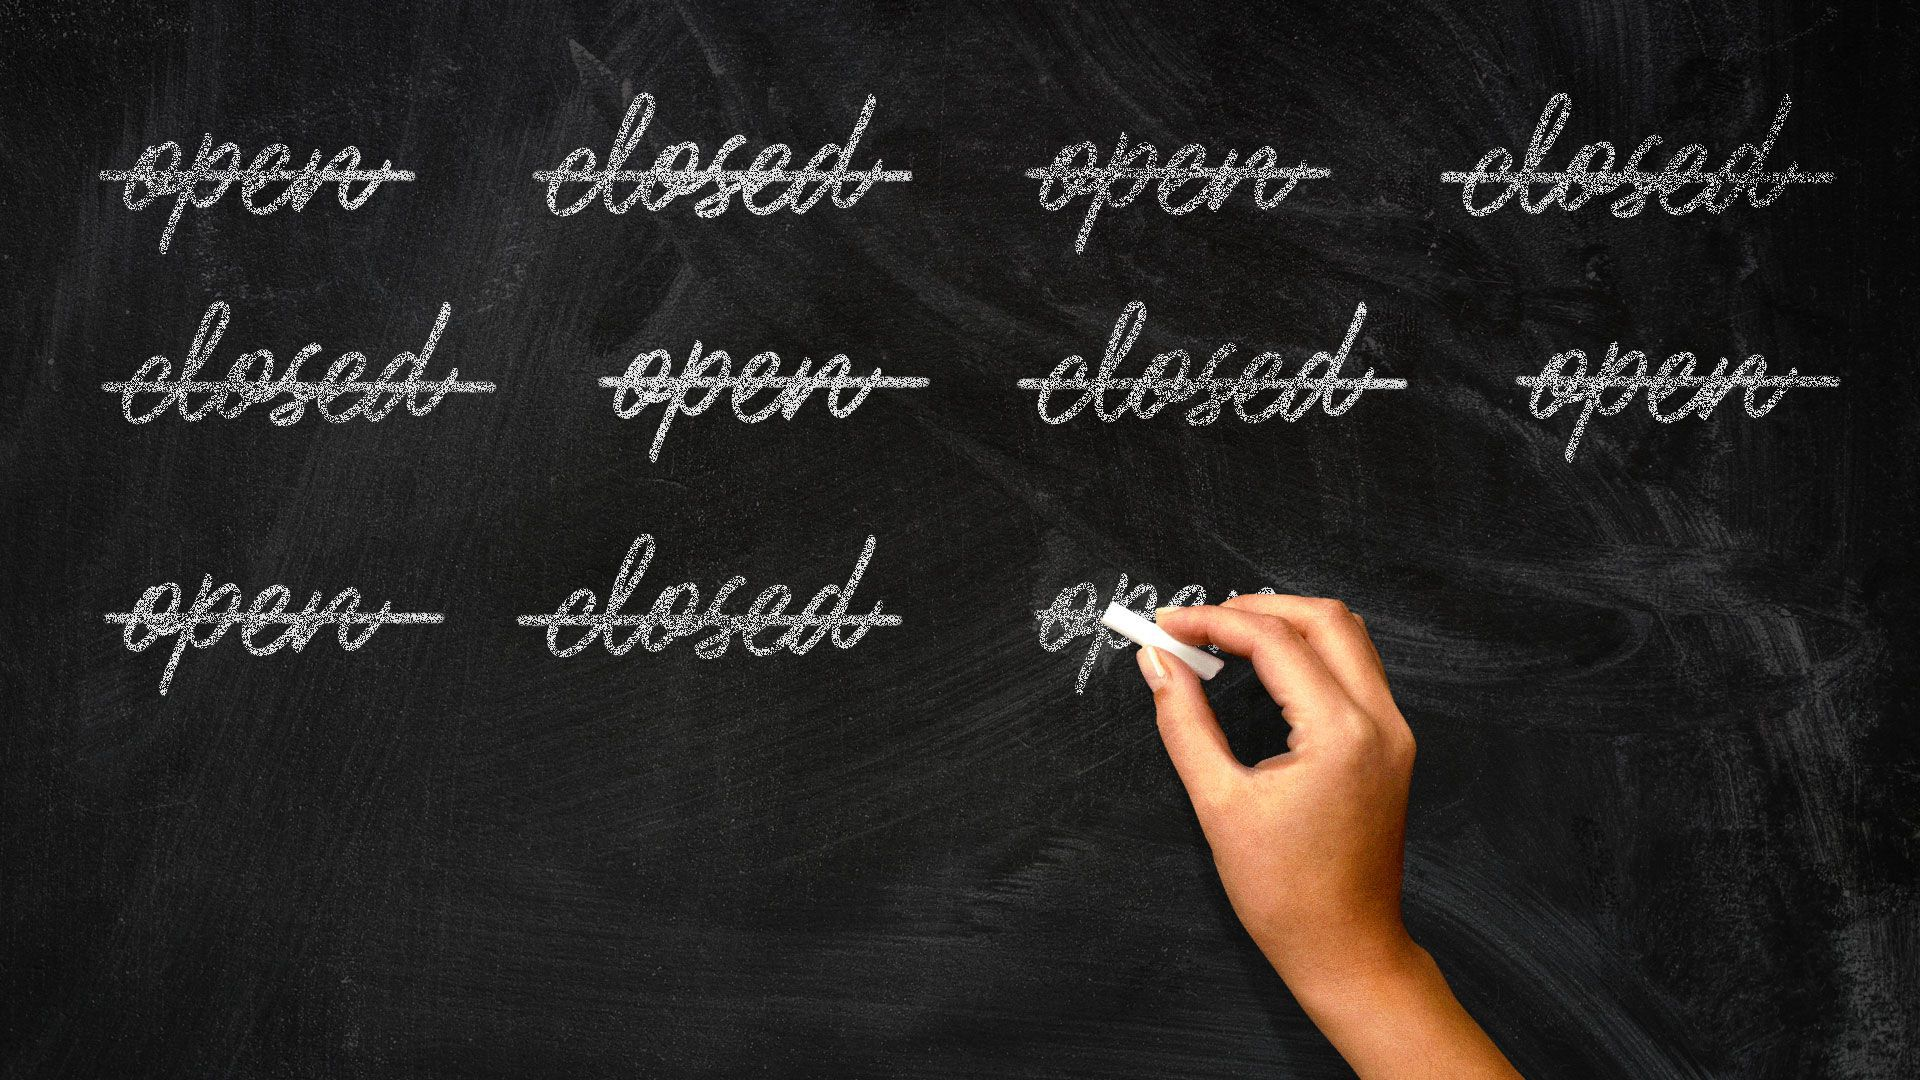 Illustration of hand writing and crossing out open and closed on a chalkboard